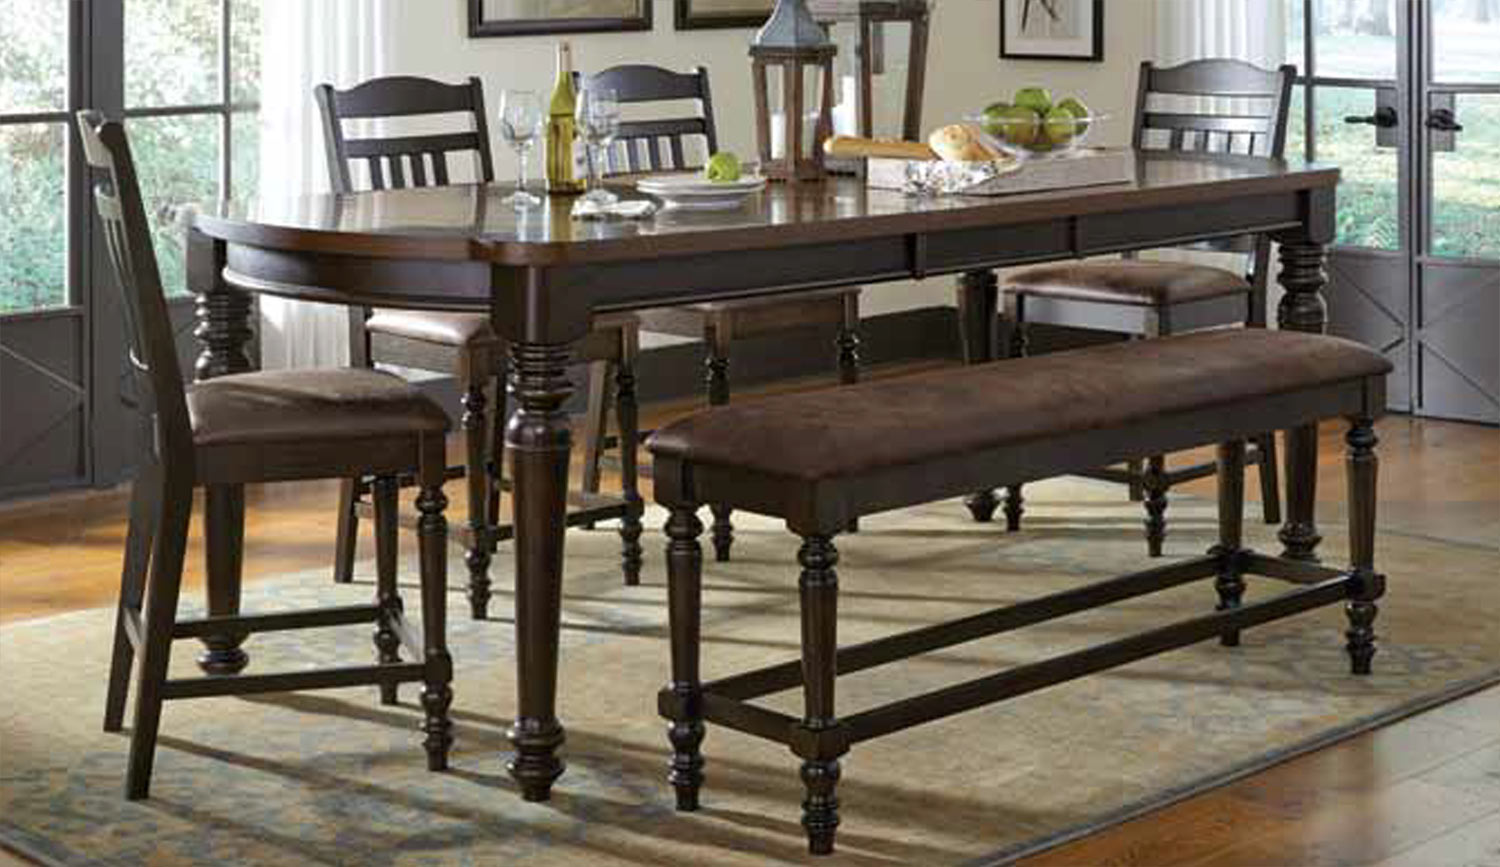 Coaster Mulligan Counter Height Dining Set - Latte/Espresso